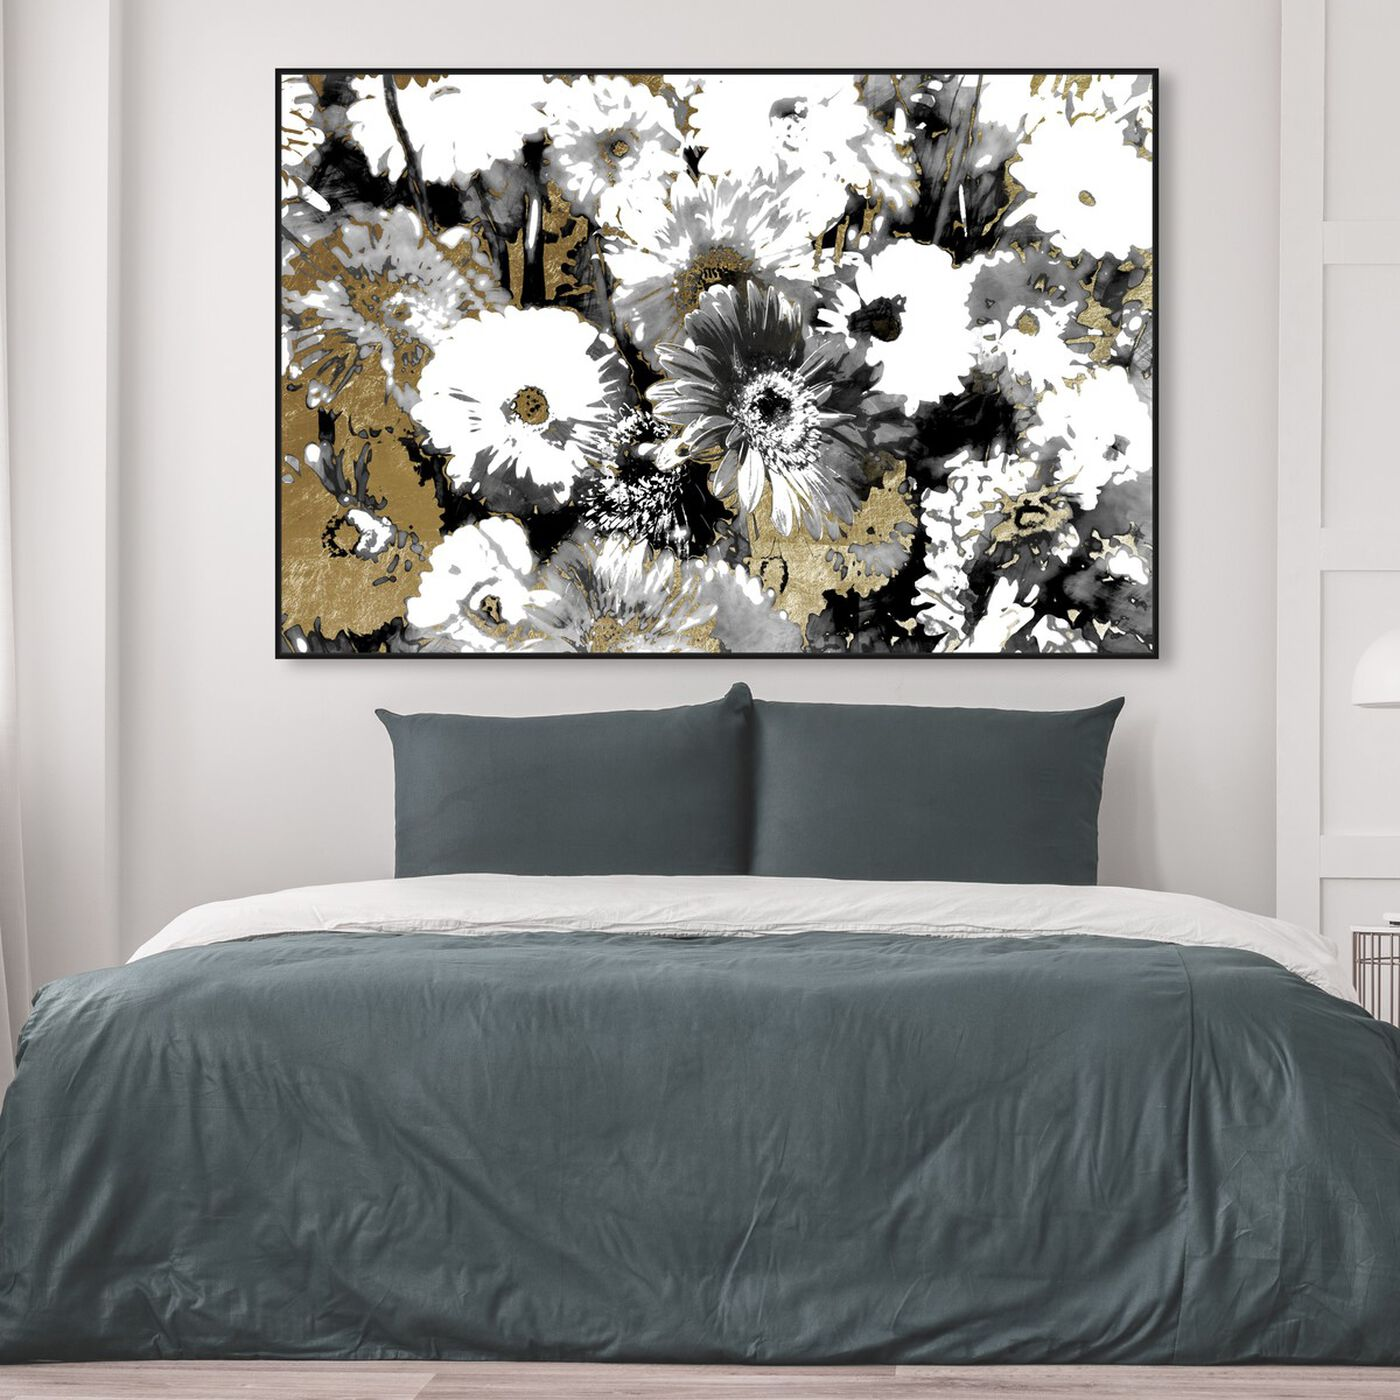 Hanging view of Golden Floral Adore featuring floral and botanical and gardens art.